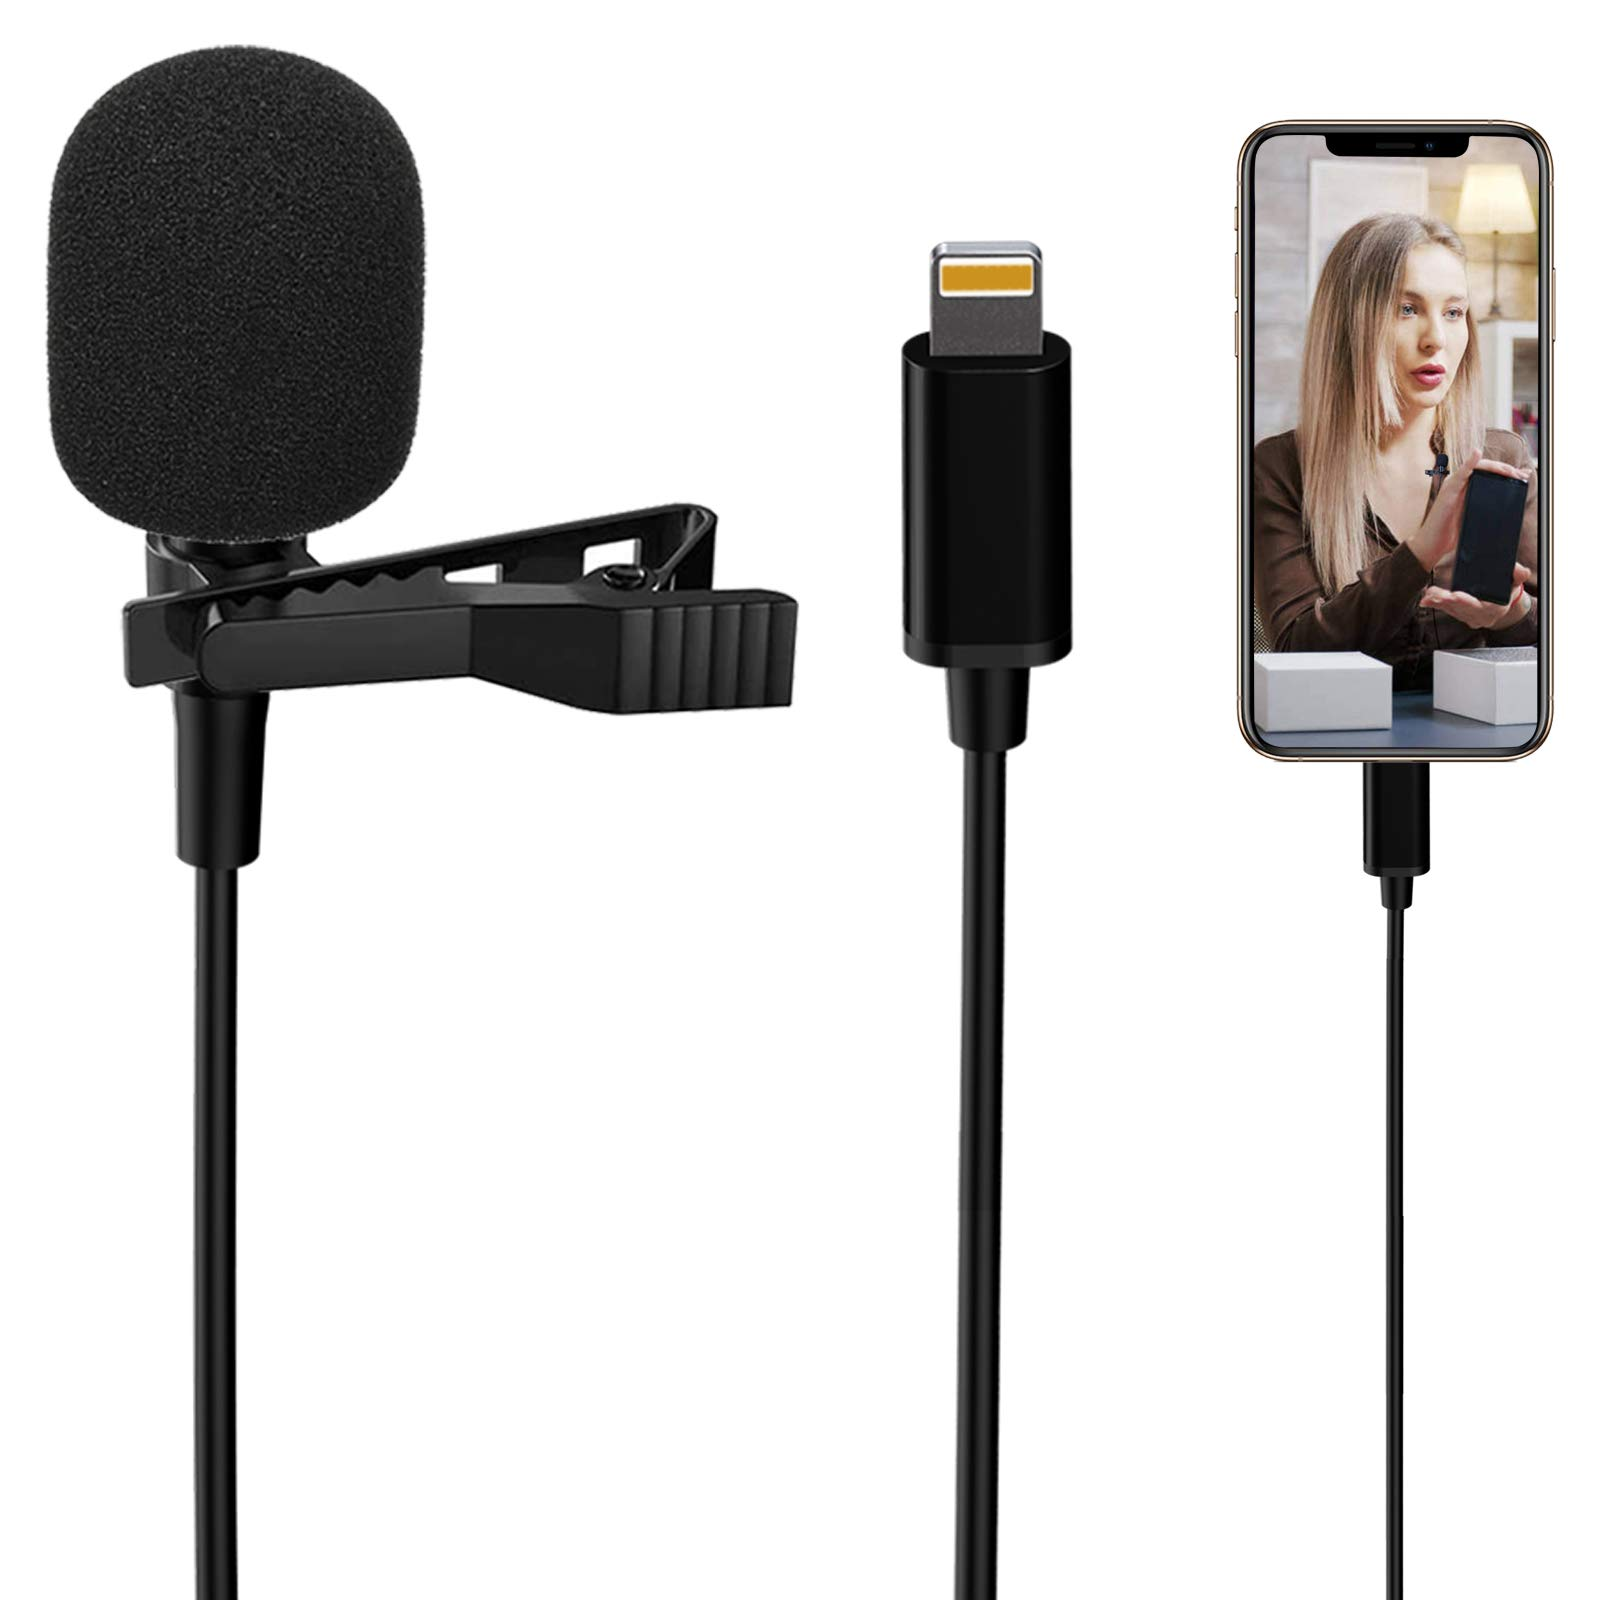 Lavalier Lapel Microphone for iPhone,Professional External Omnidirectional Mini Mic Phone Audio Video Recording,Easy Clip-on Lavalier Condenser Mic for YouTube/Vlogging/Podcast for iPhone/iPad(59in)